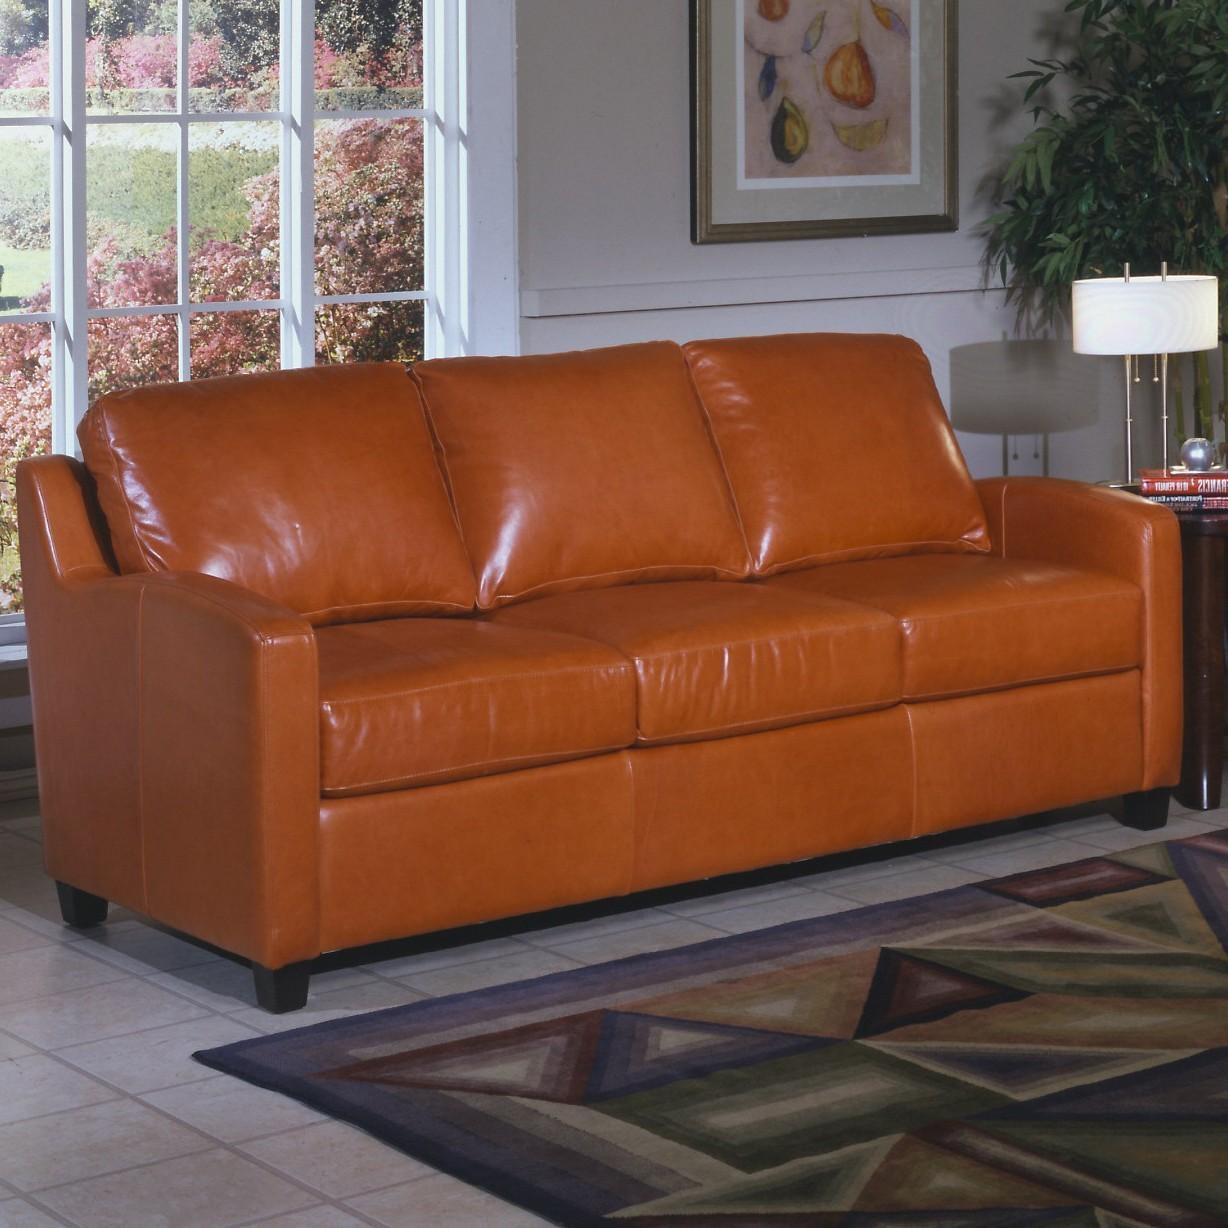 Caramel Leather Sofa | Sofa Gallery | Kengire Regarding Caramel Leather Sofas (View 16 of 20)